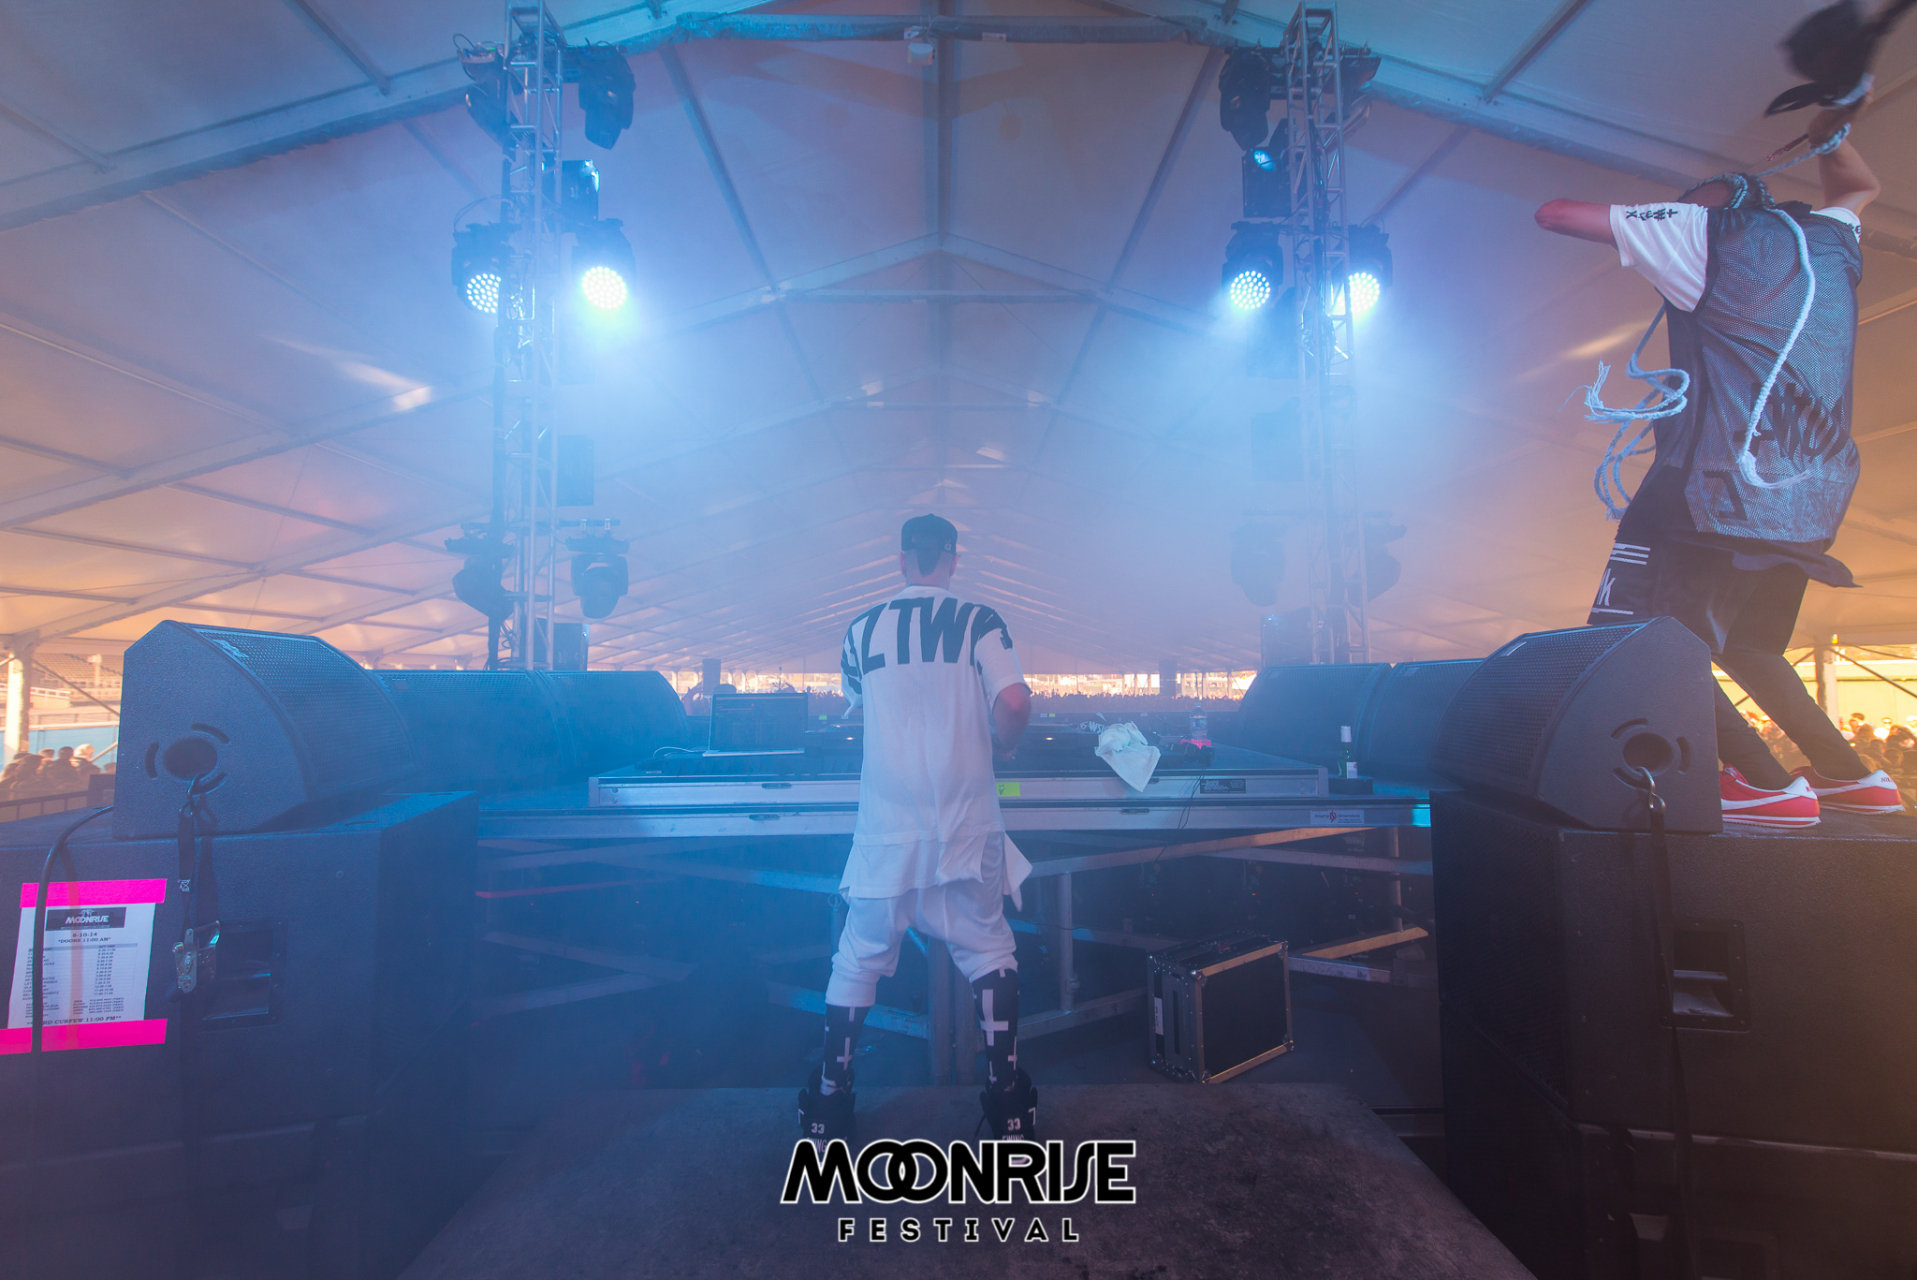 Moonrise_day2-66